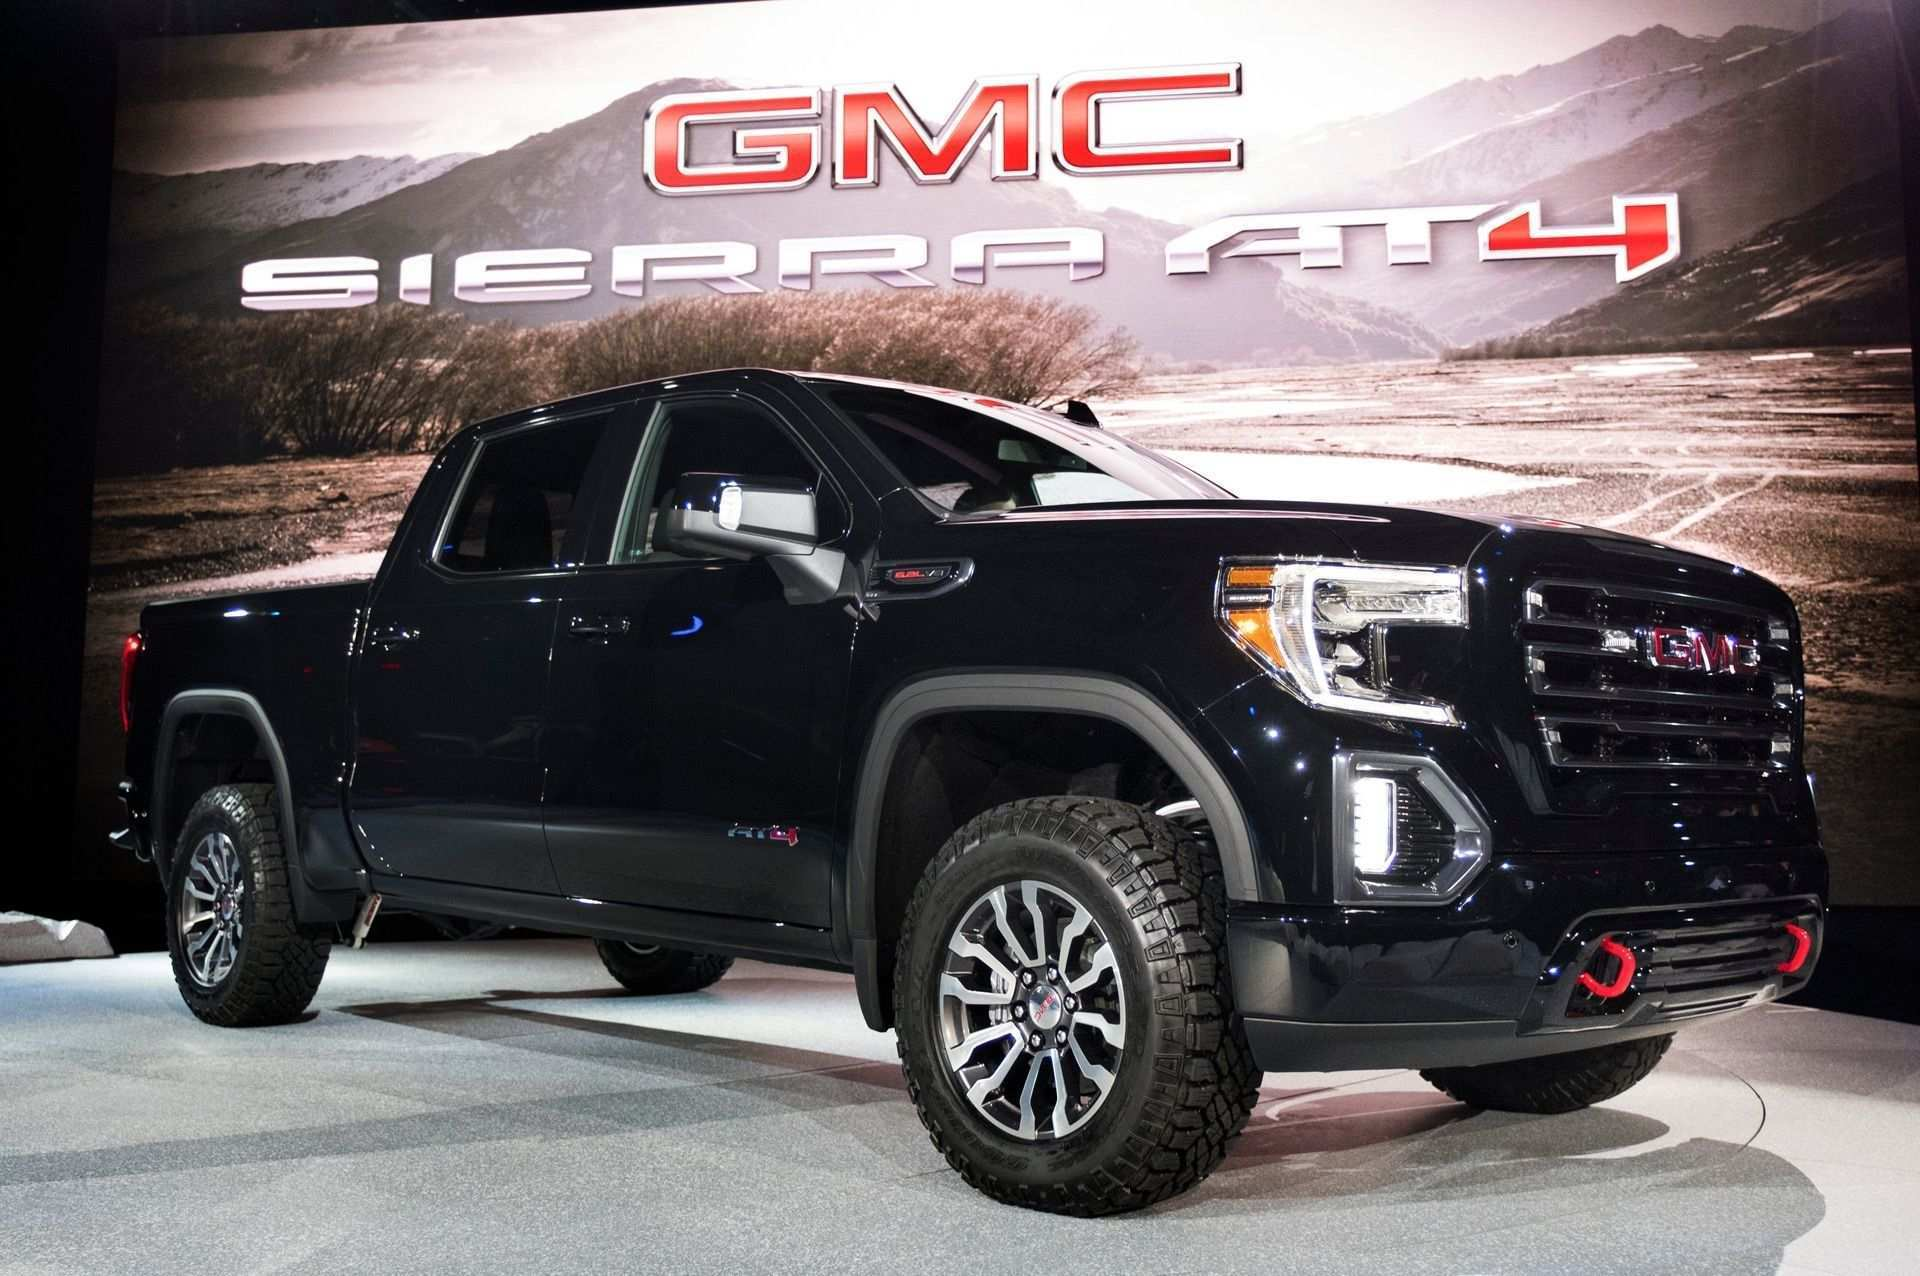 38 Concept of The Images Of 2019 Gmc Sierra Release Specs And Review Reviews with The Images Of 2019 Gmc Sierra Release Specs And Review